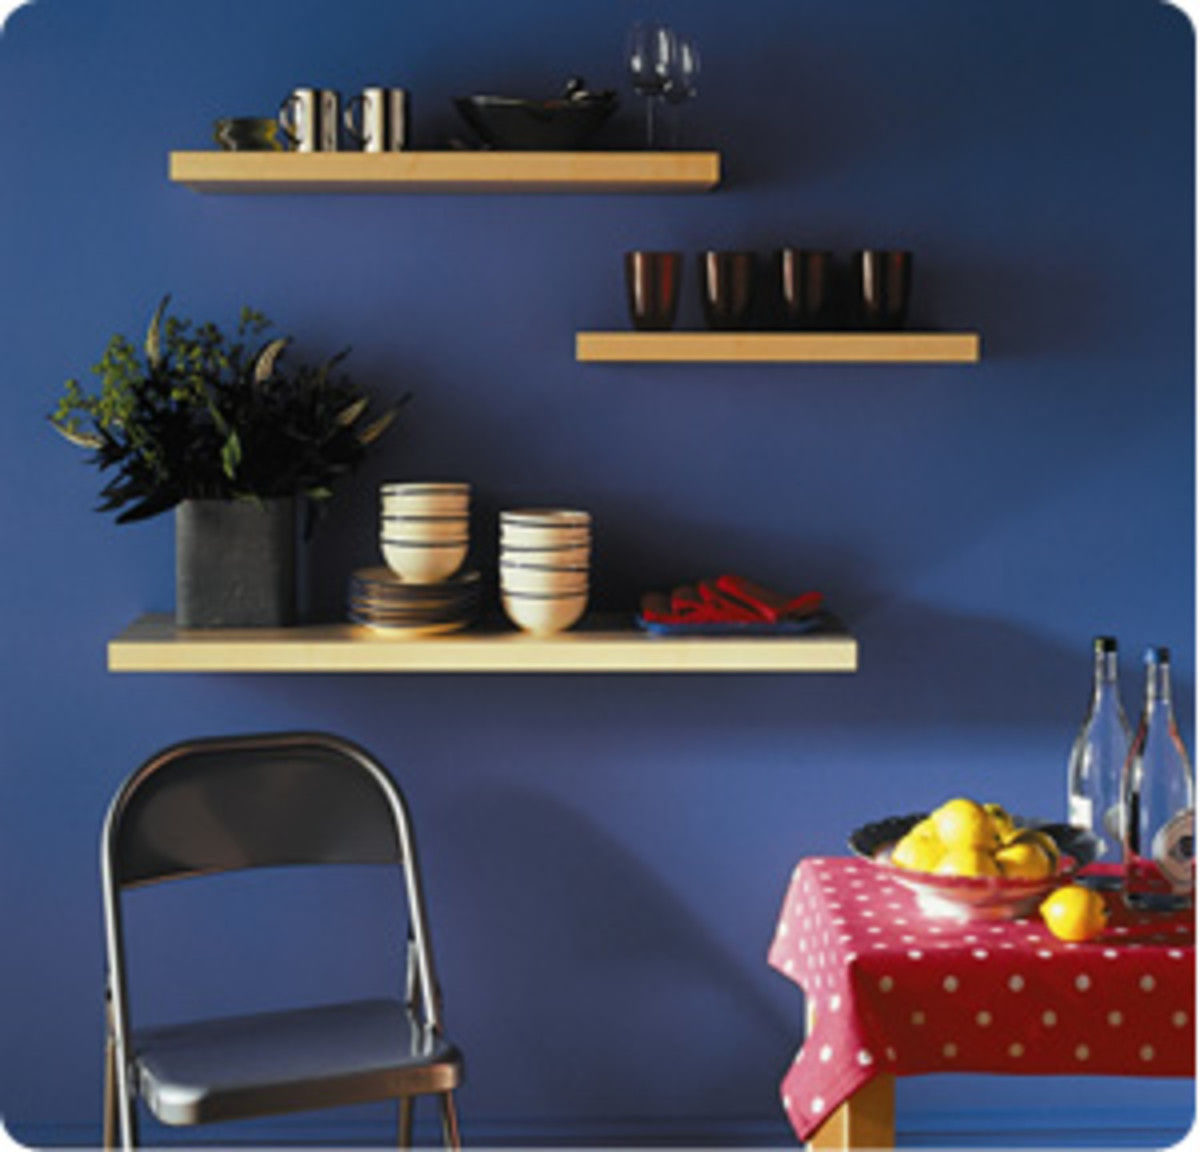 Floating shelves look awesome